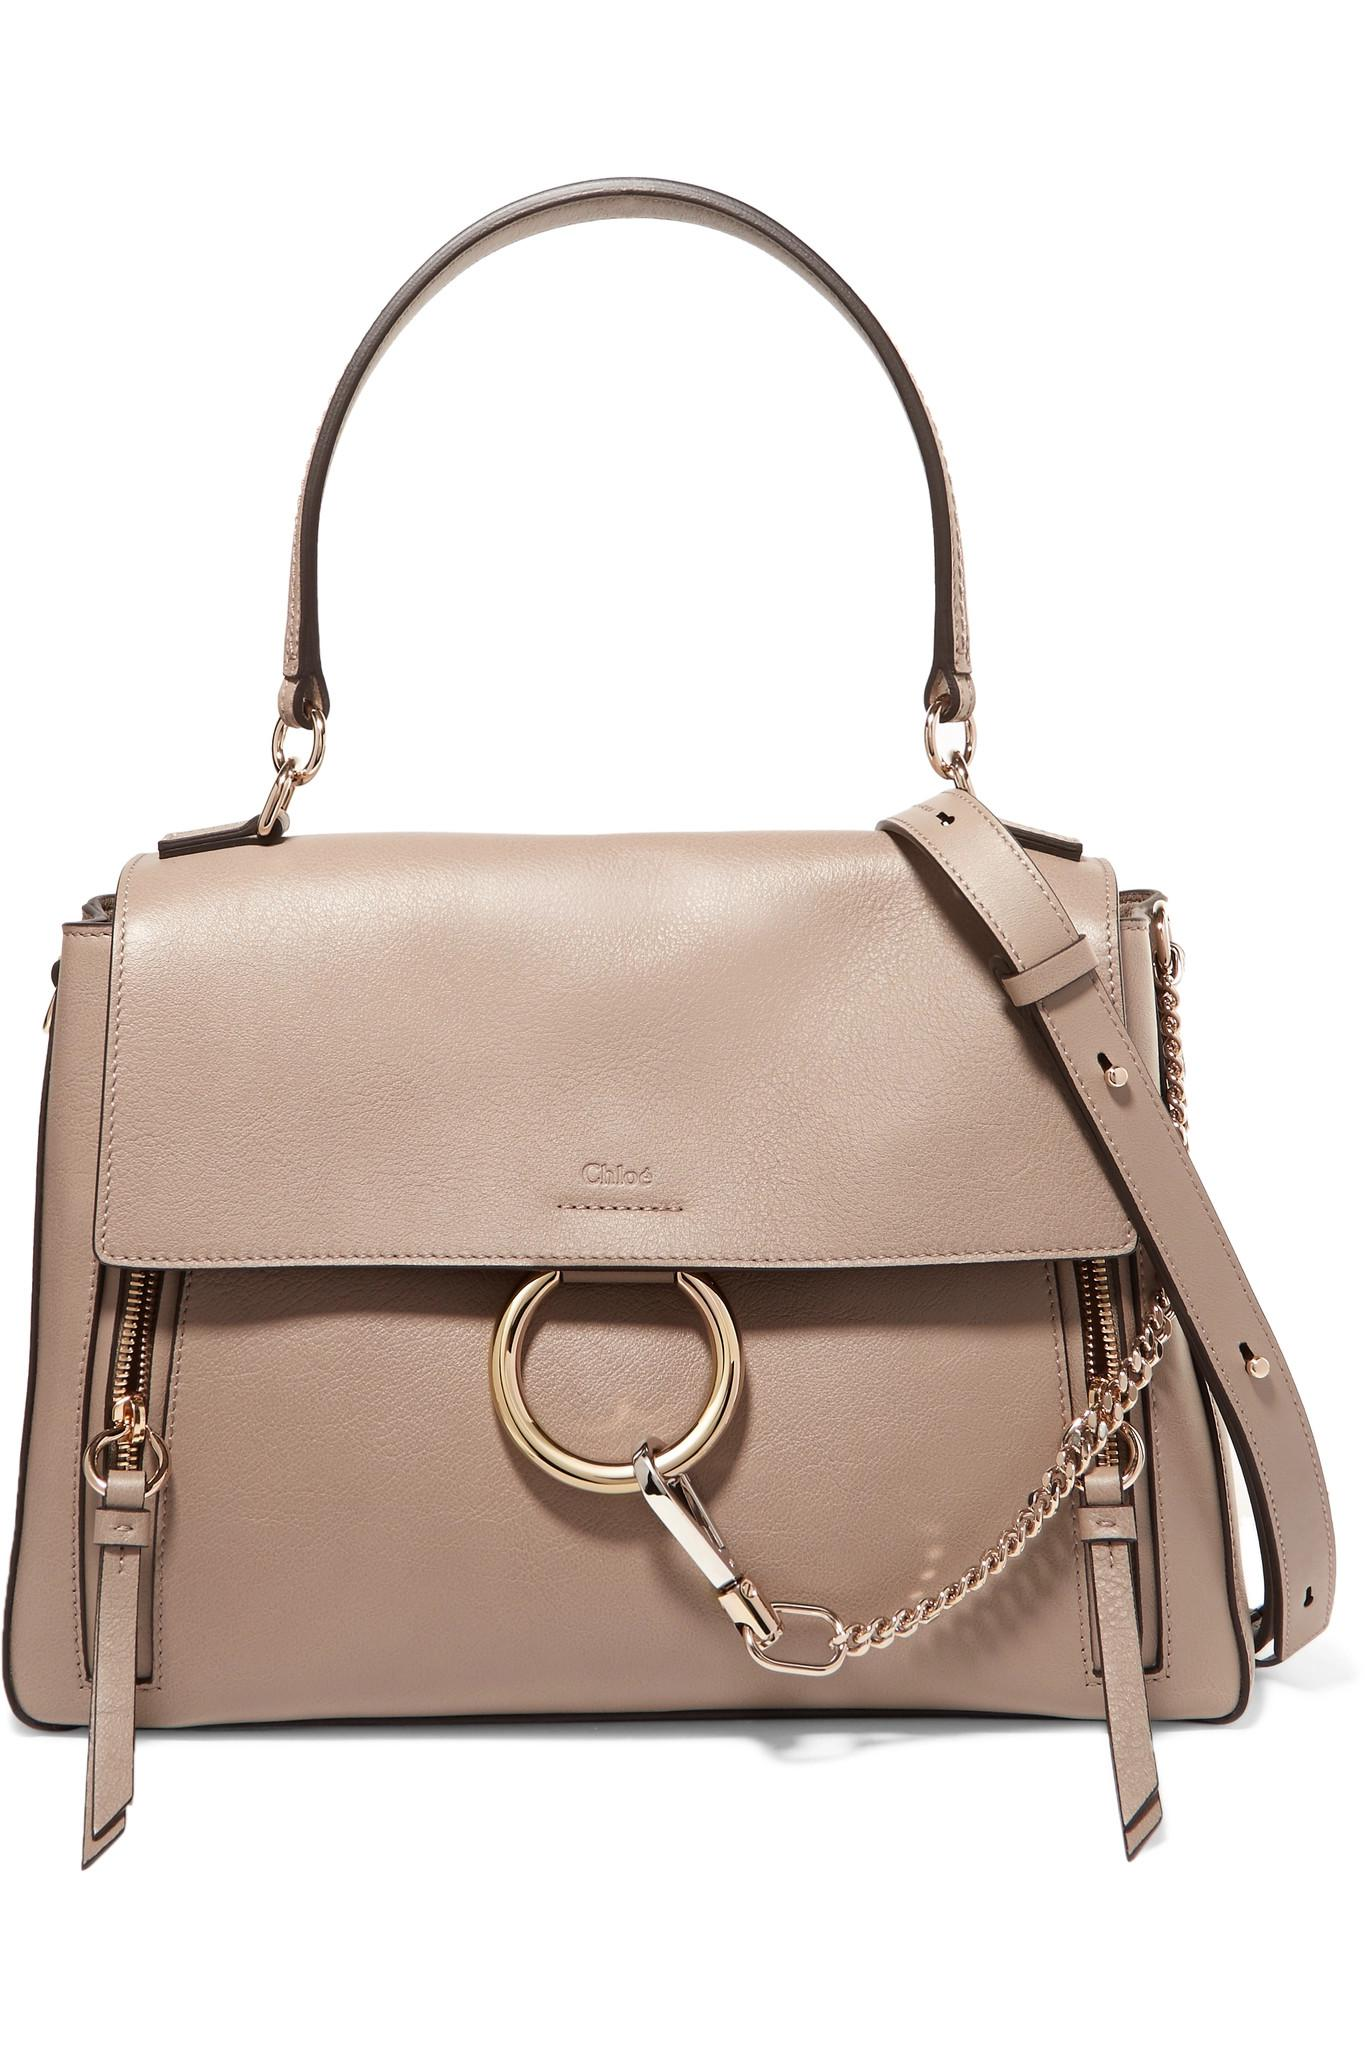 Collections Sale Supply Faye Day Large Textured-leather Shoulder Bag - Gray Chloé For Sale Online OjaMS